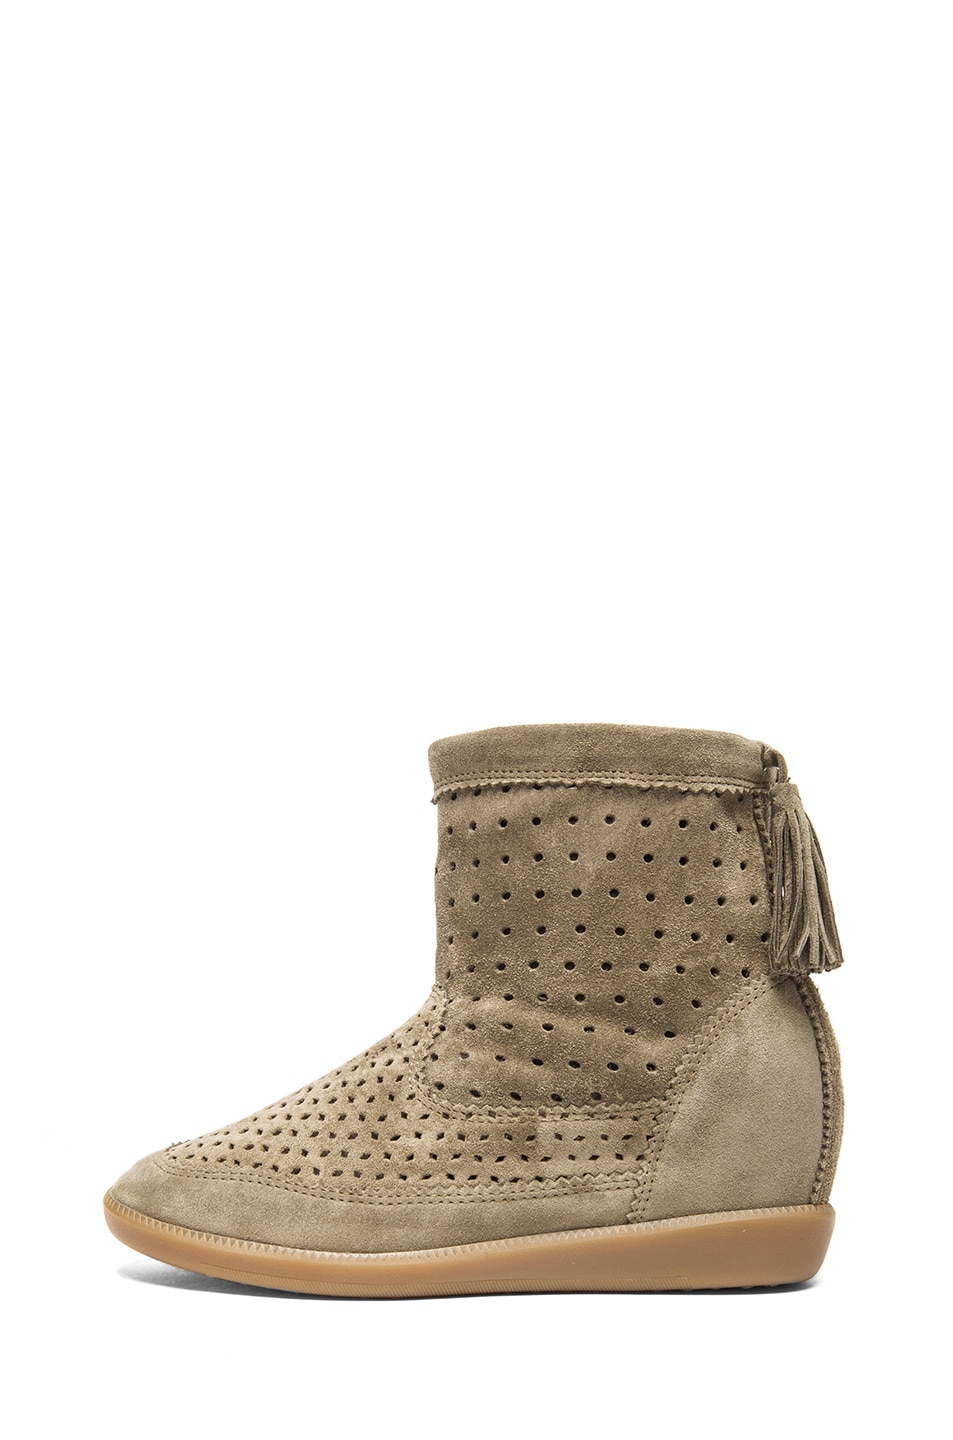 Image 1 of Isabel Marant Beslay Calfskin Velvet Leather Boots in Taupe